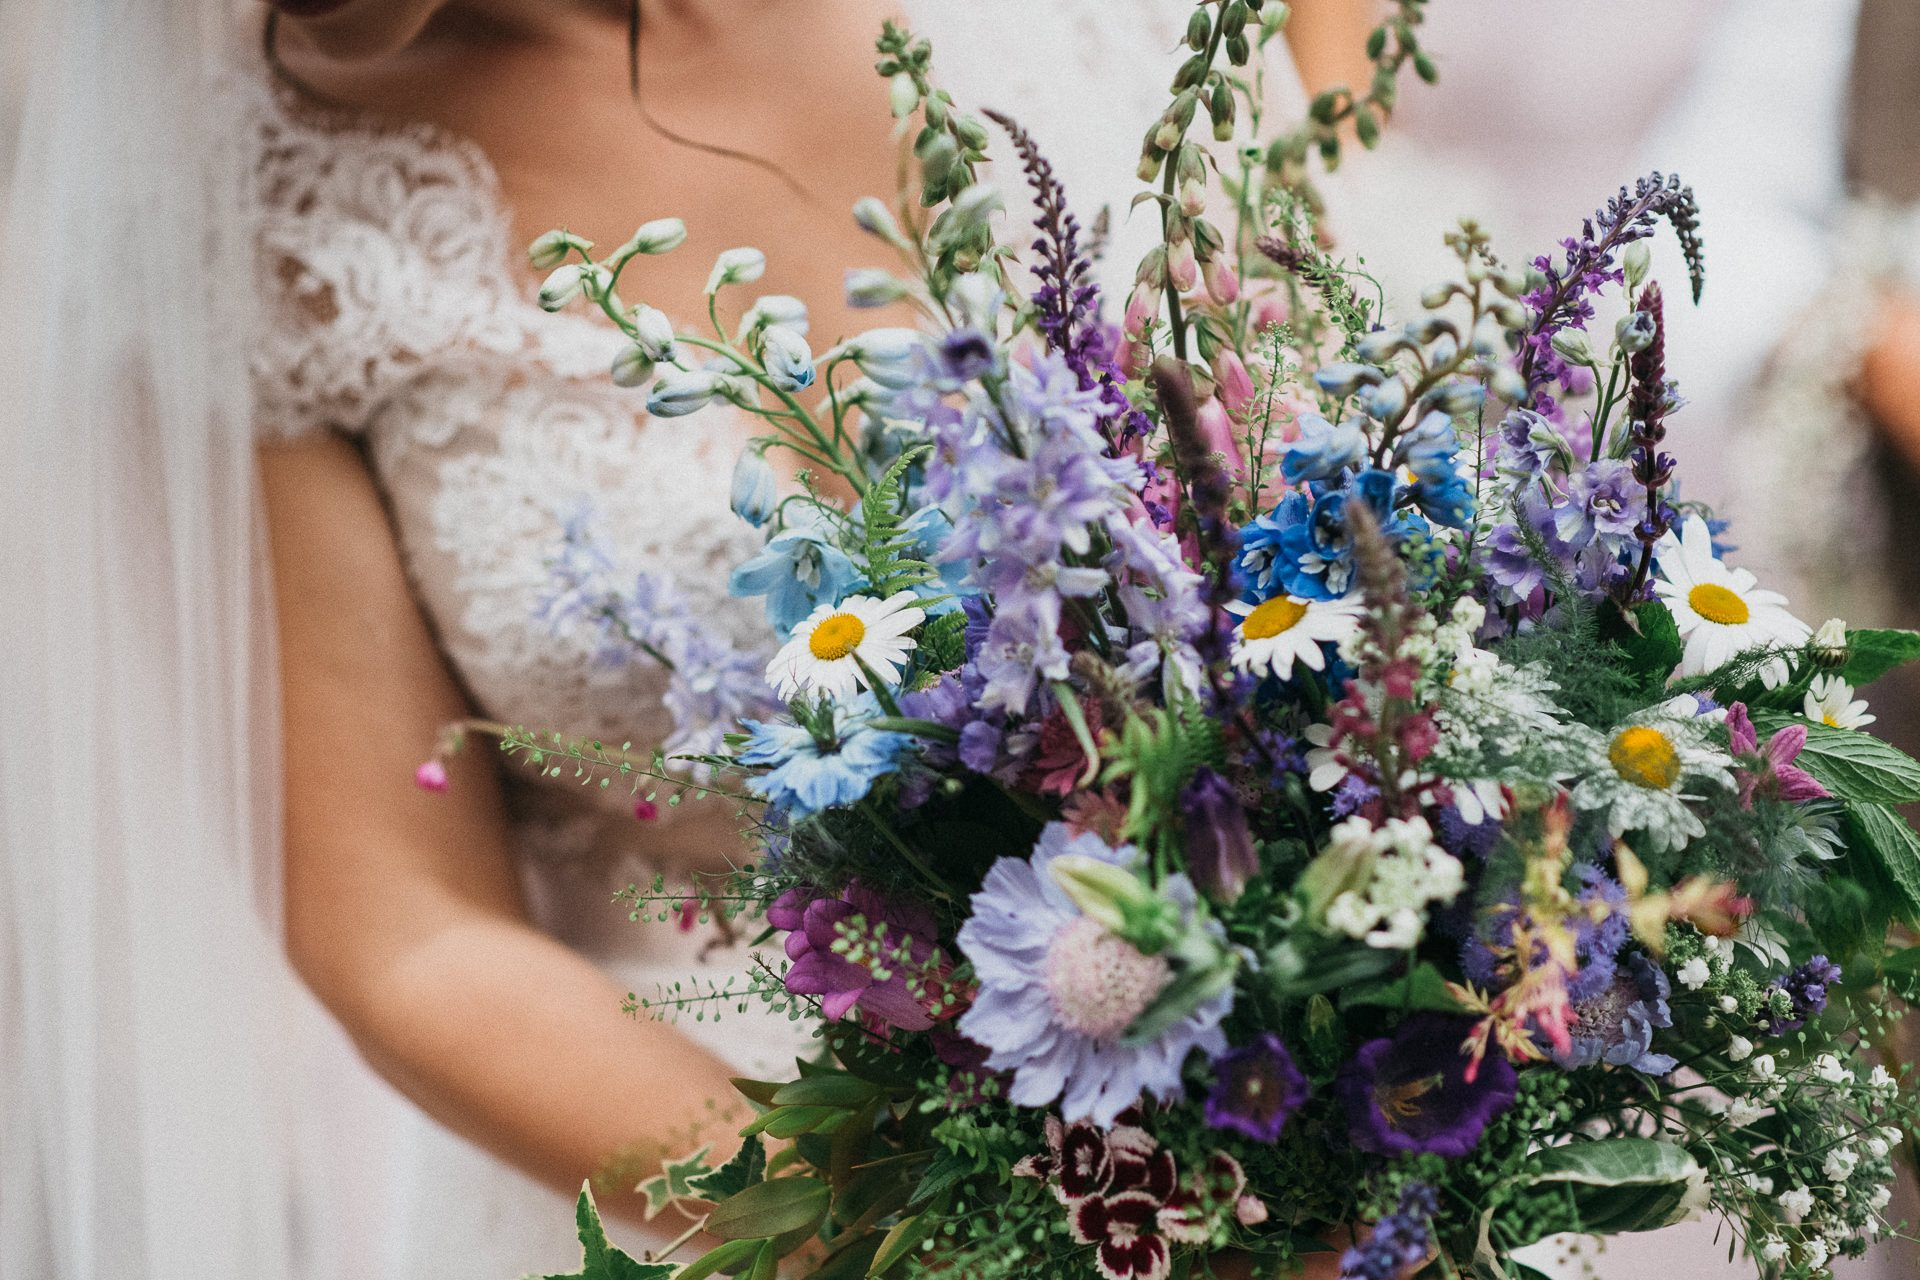 0064-DEVON-SOMERSET-WEDDING-PHOTOGRAPHER-0010-BEST-OF-2019-LOUISE-MAY-DEVON-SOMERSET-WEDDING-PHOTOGRAPHY-LM1_6568